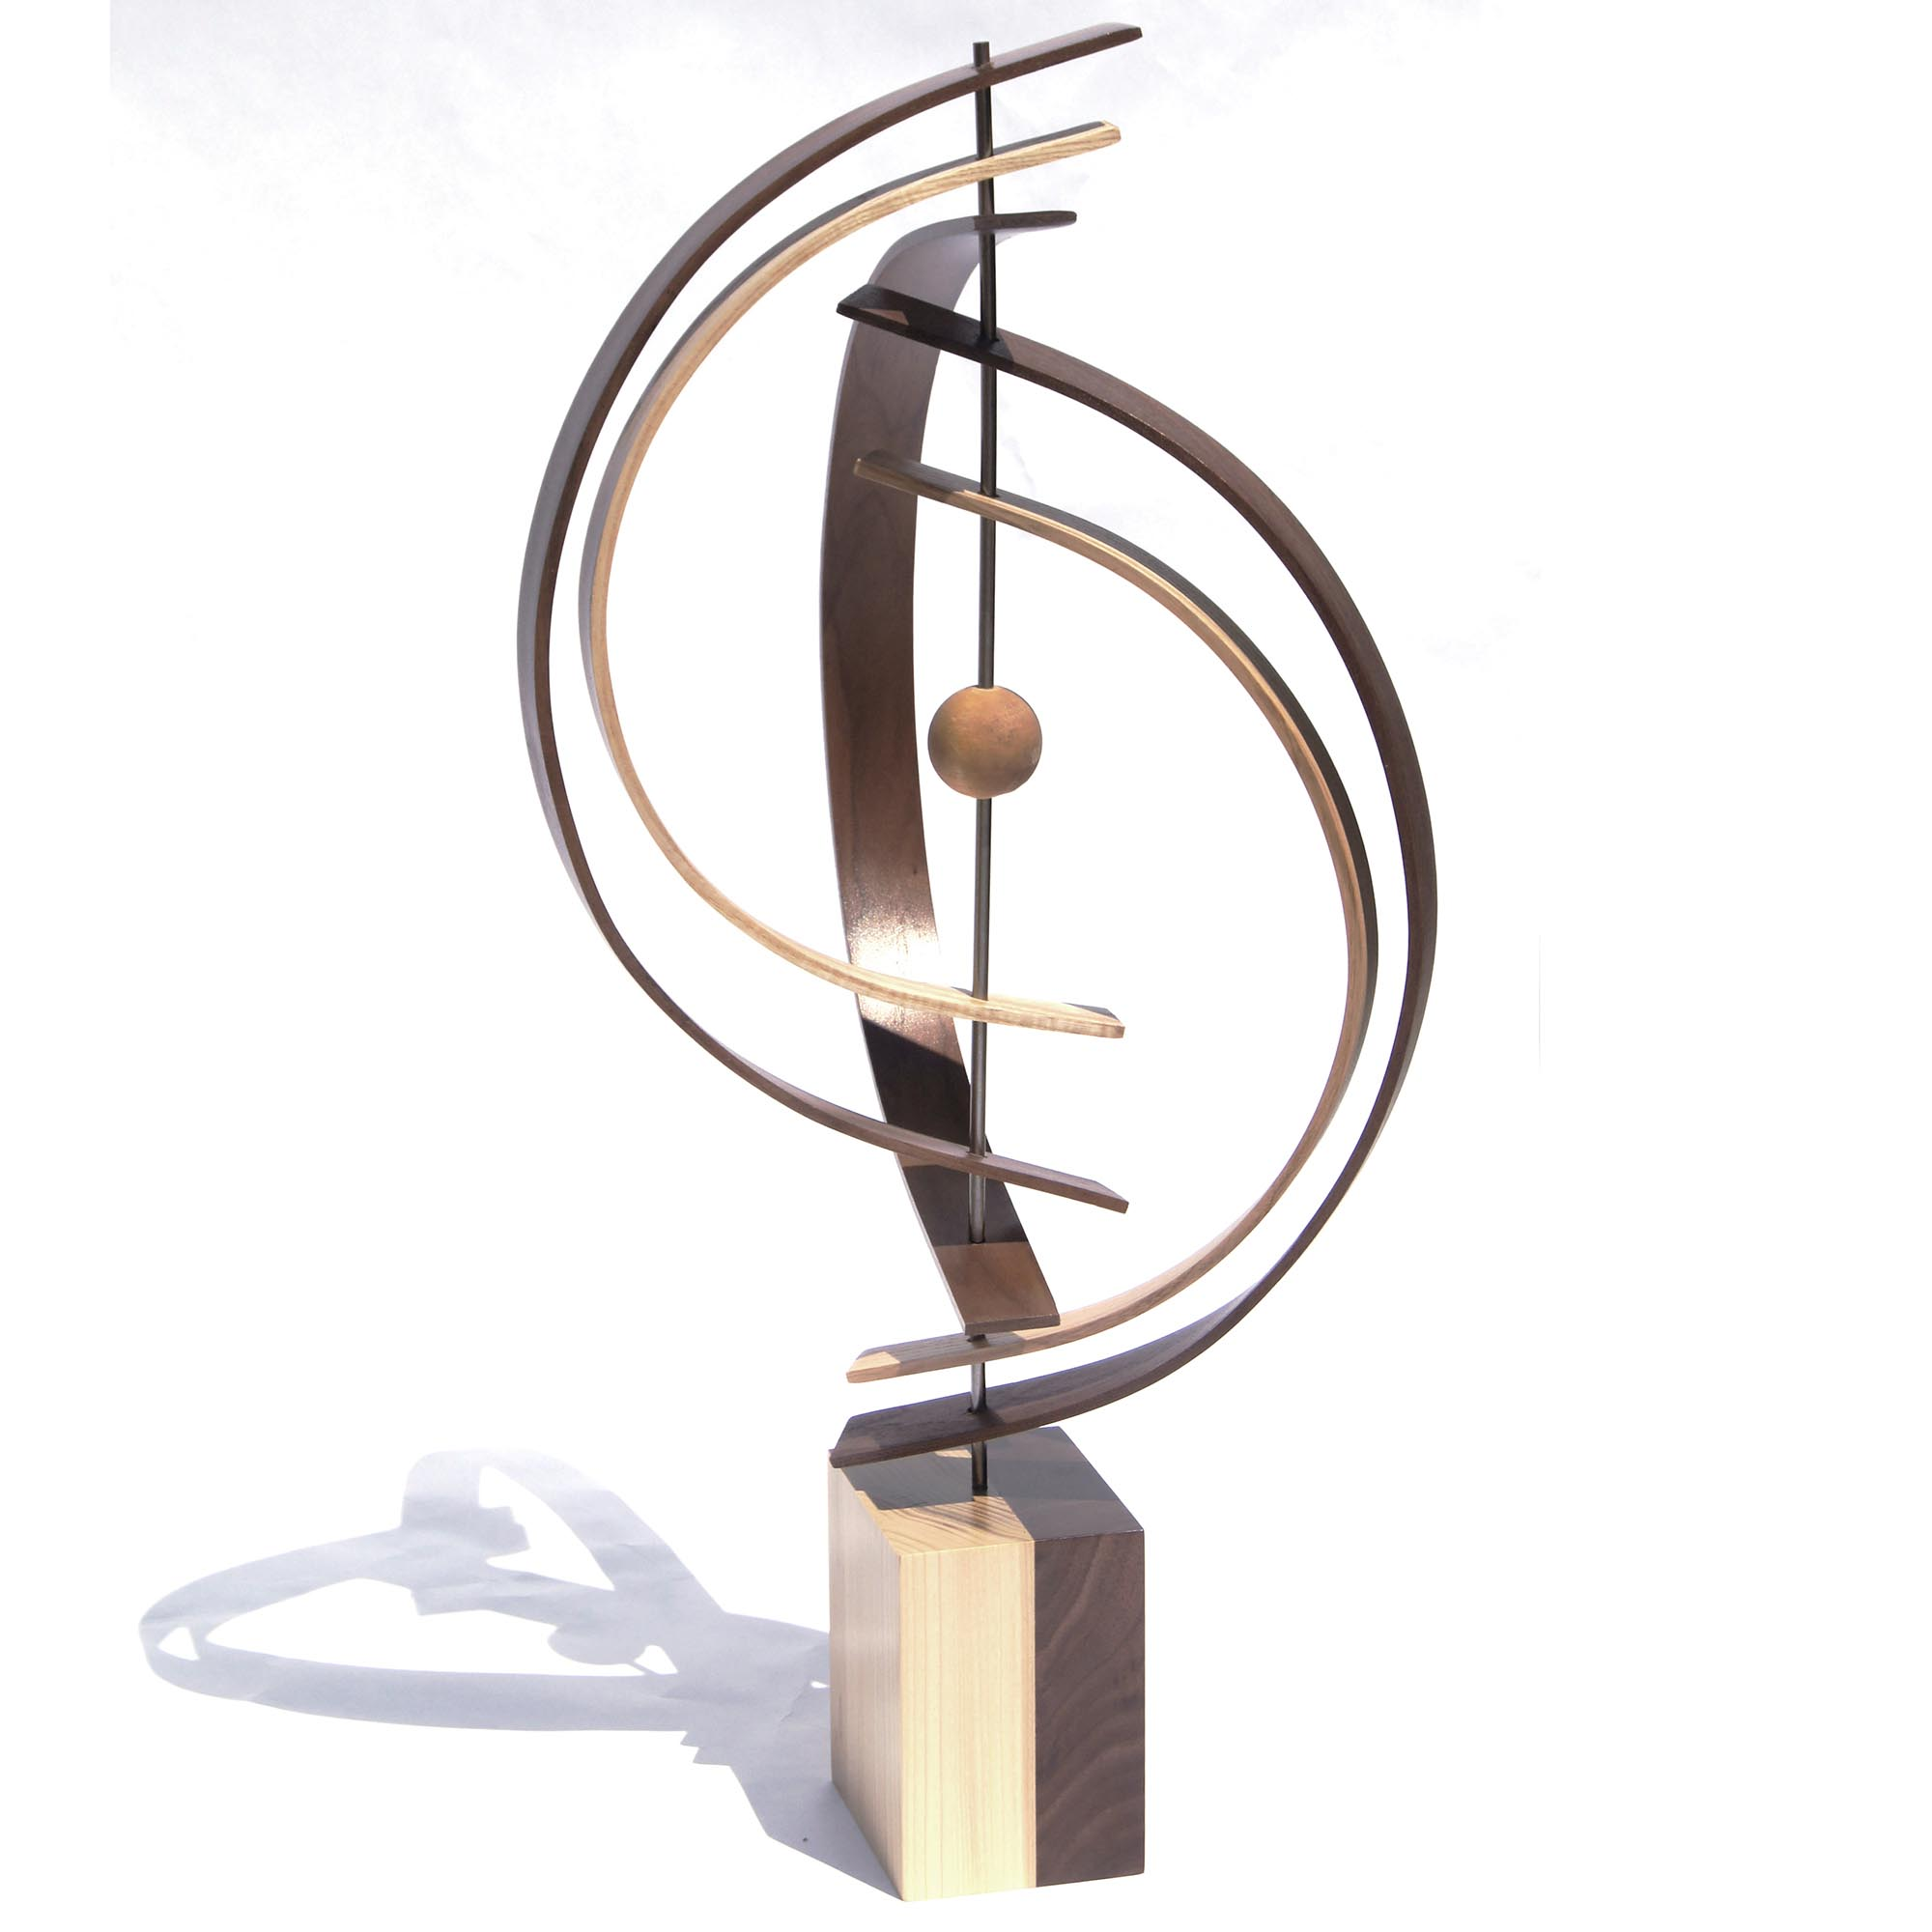 In Orbit by Jeff Linenkugel - Modern Wood Sculpture on Natural Wood - Image 2